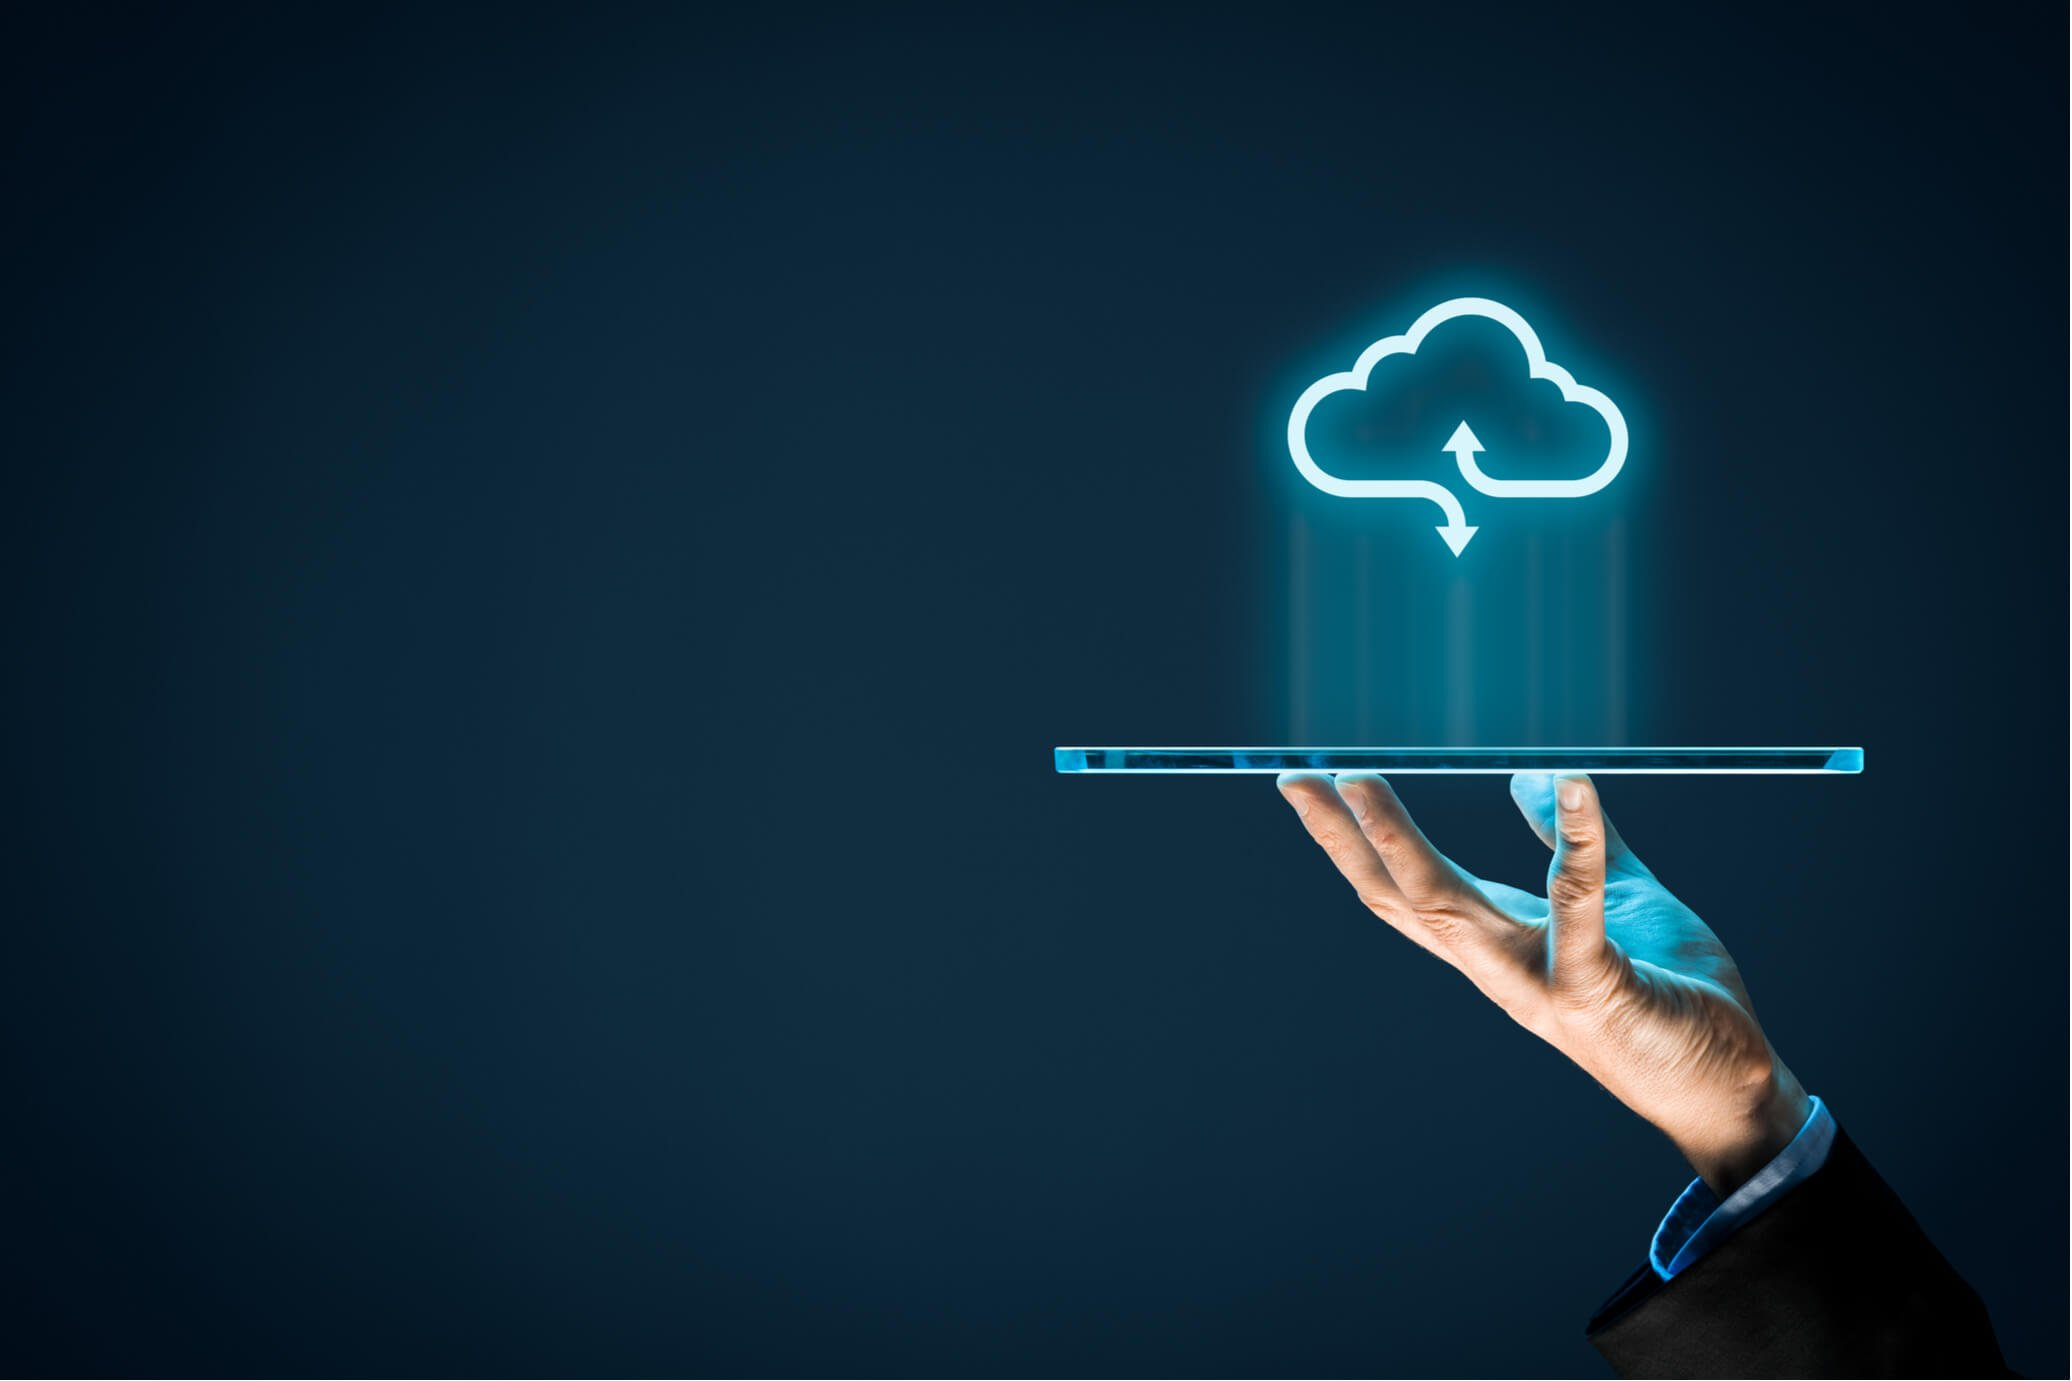 The Four Biggest Obstacles On The Way To The Cloud